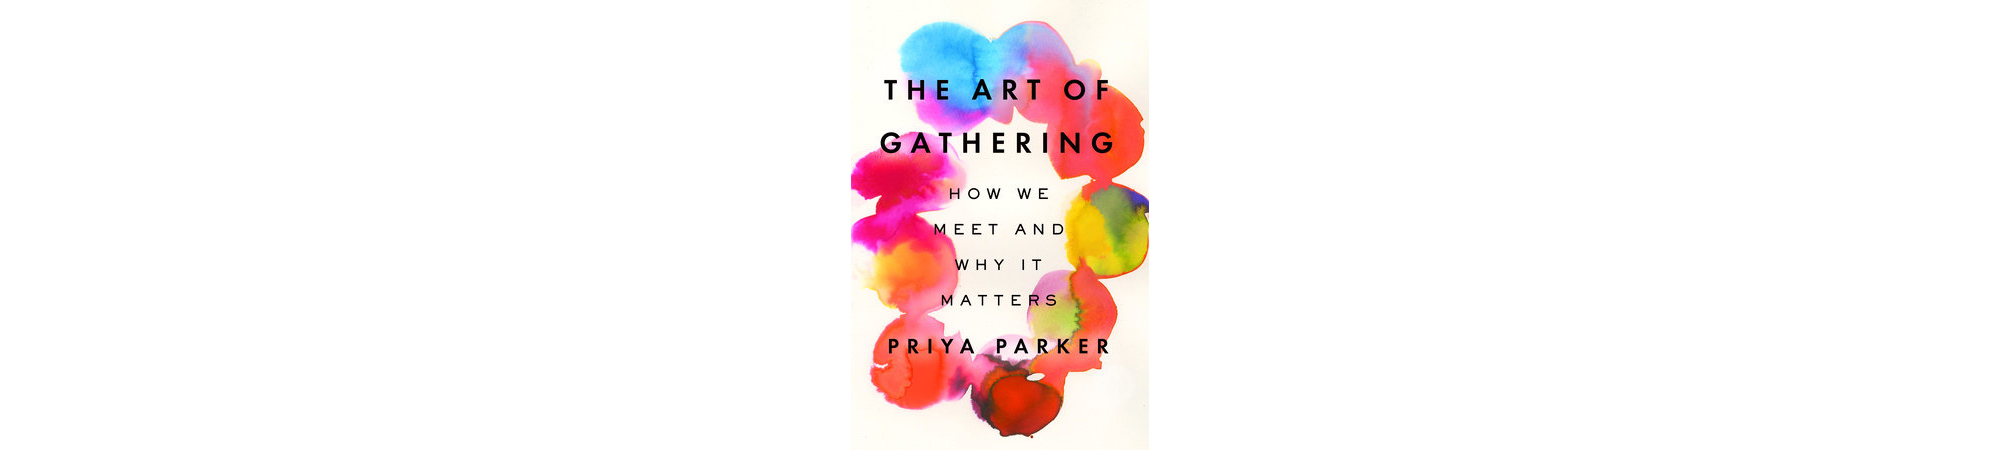 Cover of The Art of Gathering